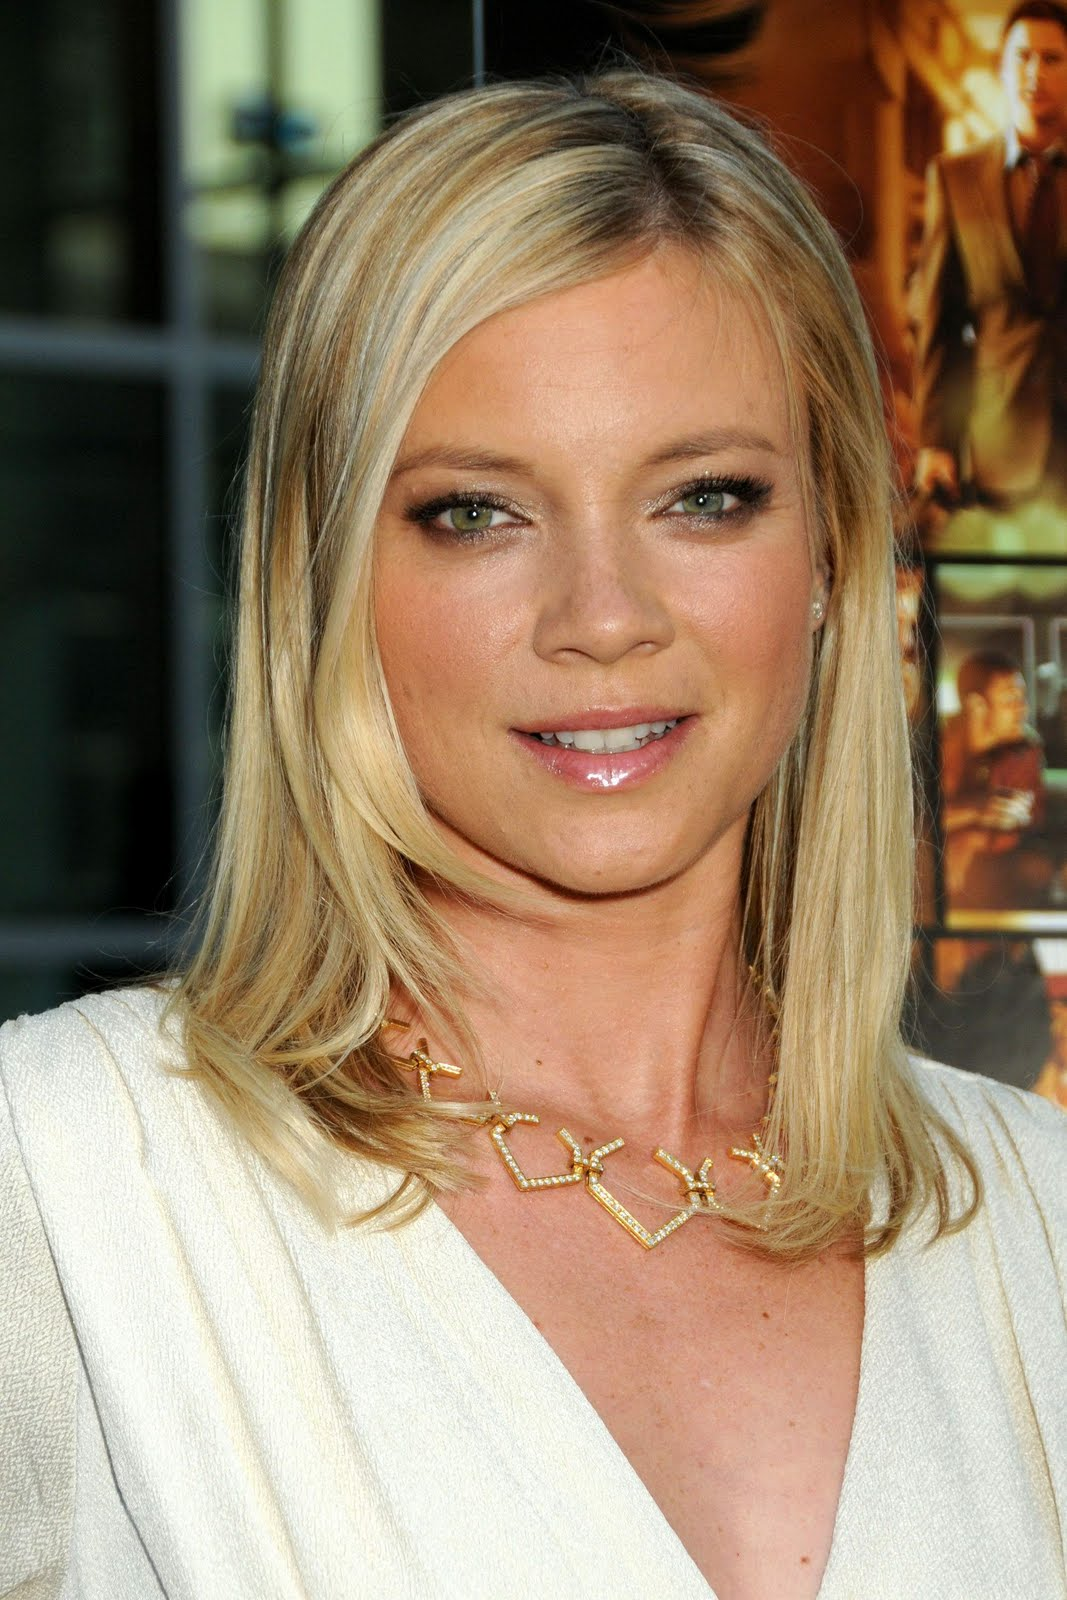 http://3.bp.blogspot.com/_V_XFUu5ZlnE/TF-jzm572yI/AAAAAAAAAWg/uVE9M6C_OWM/s1600/Amy_Smart_At_The_Middle_Men_Premiere_In_LA012.jpg